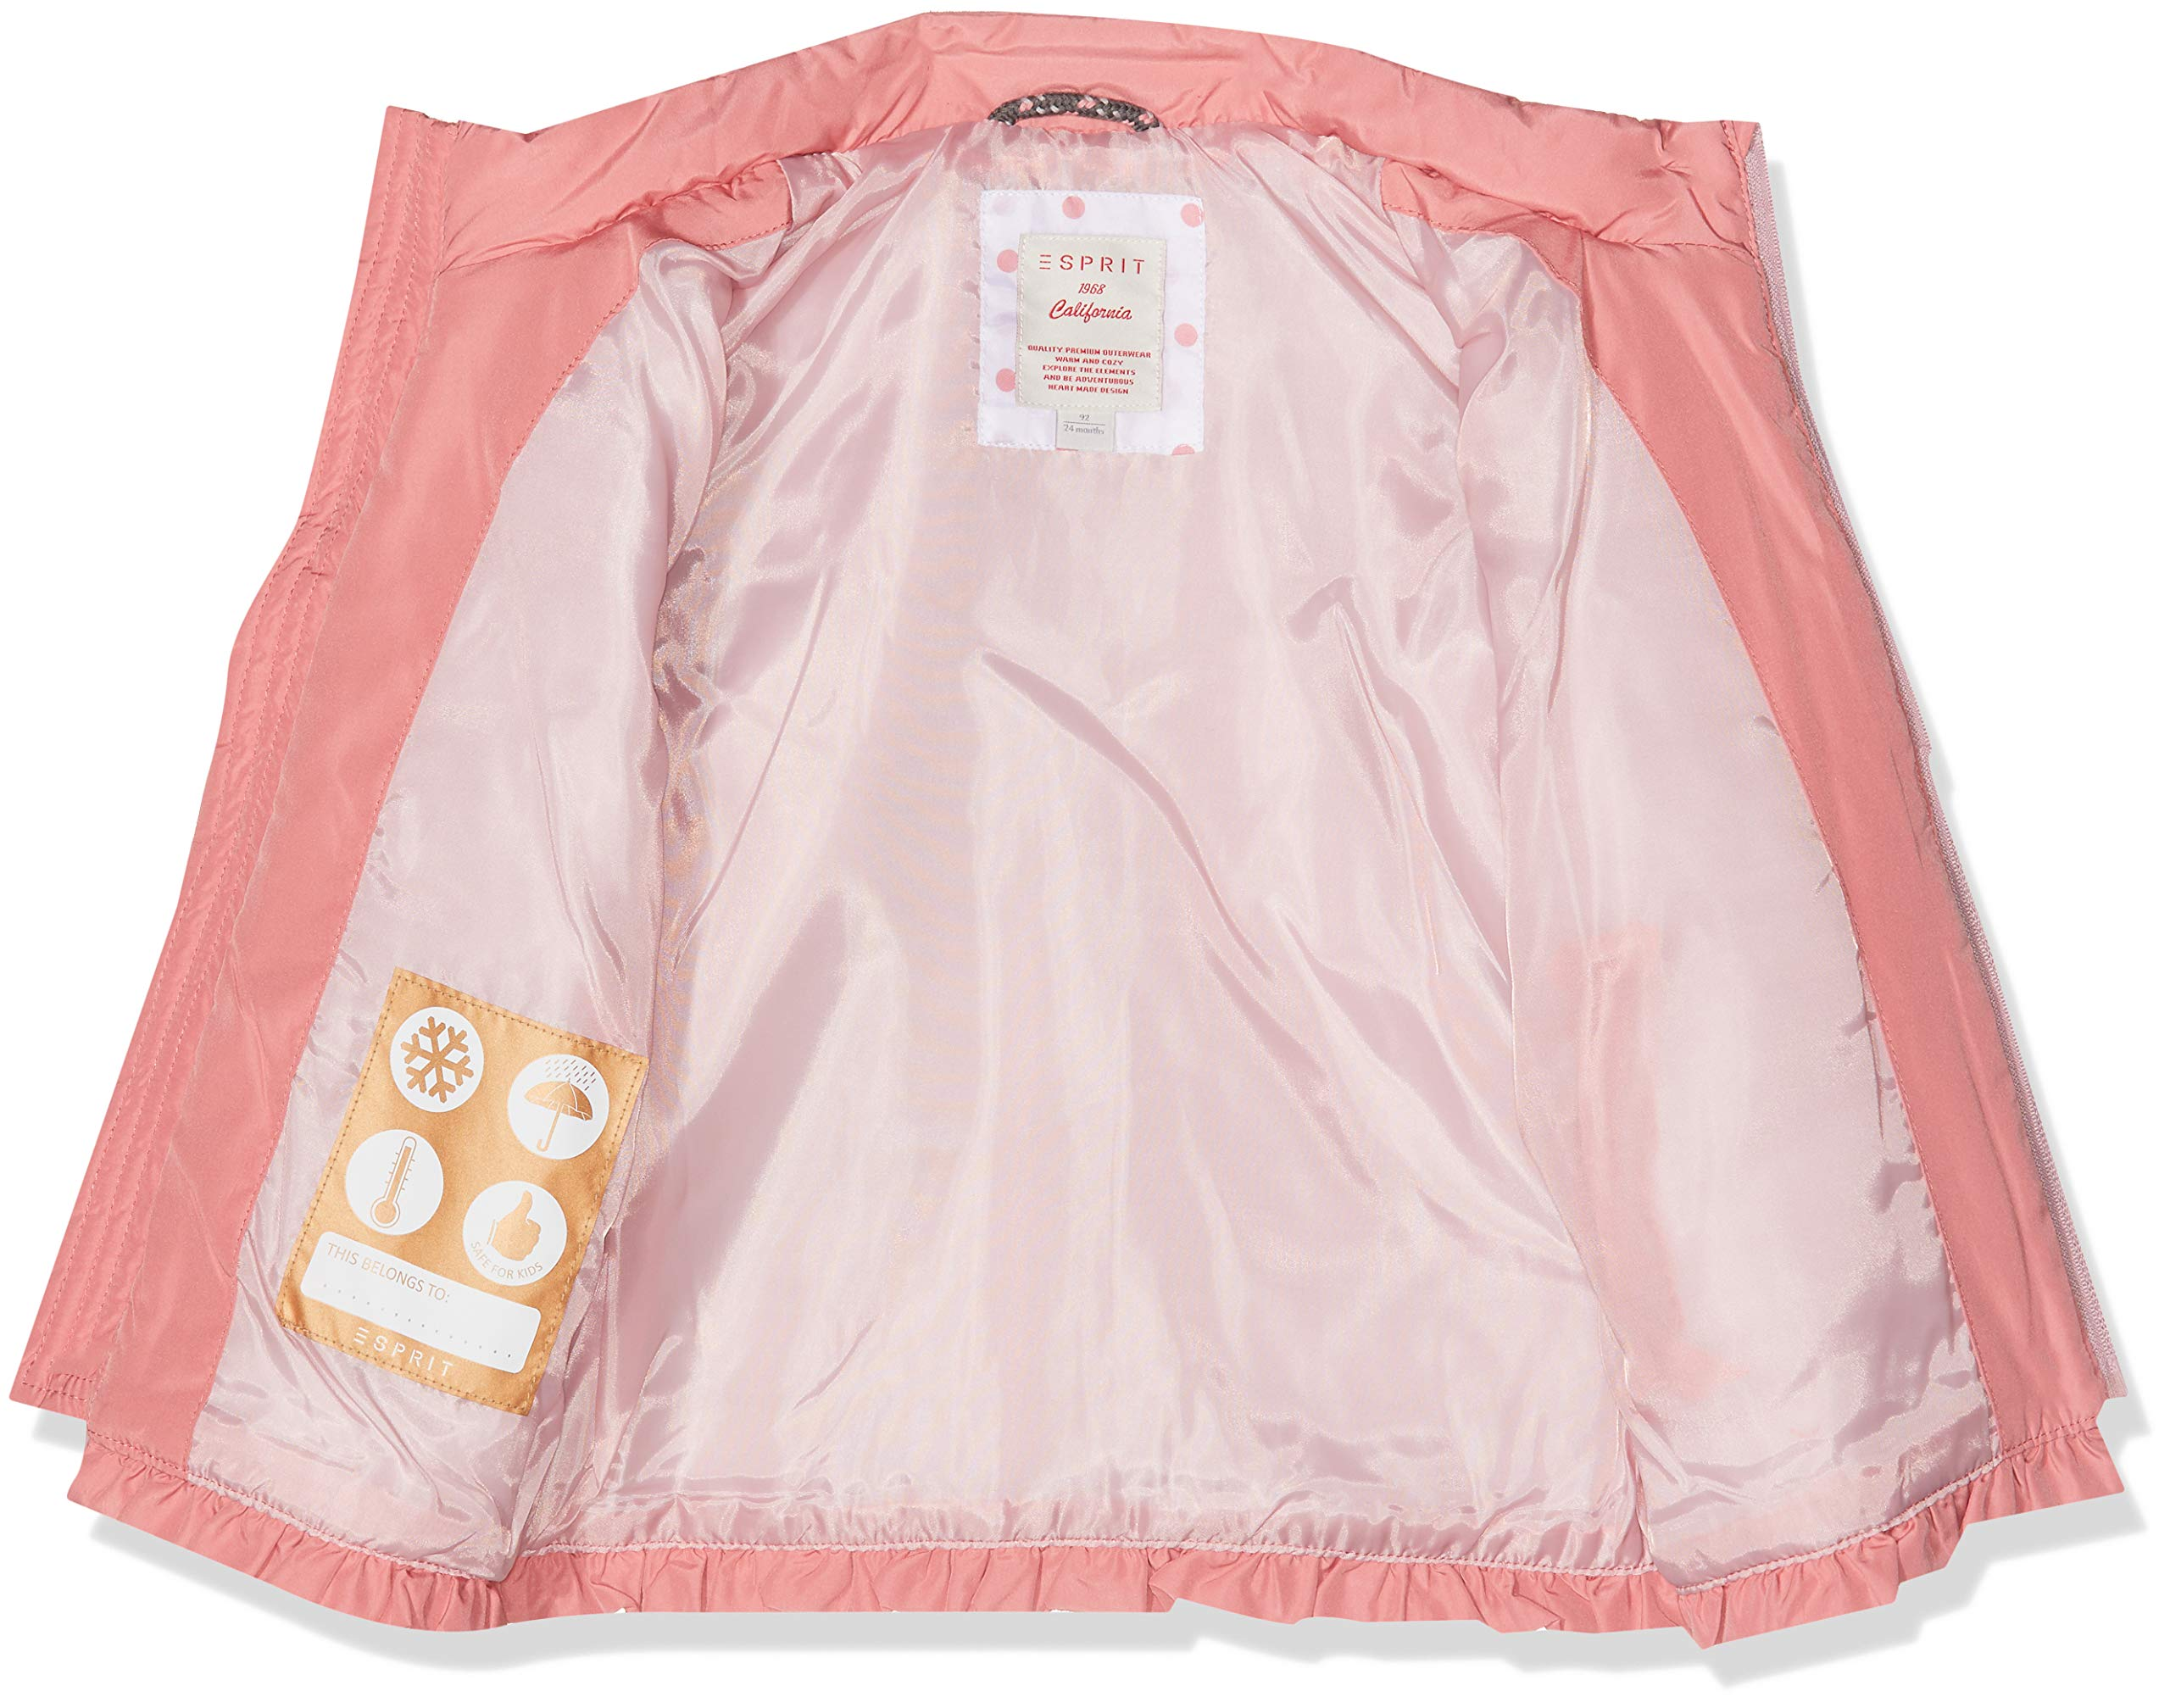 Esprit Kids Parka For Girl, Chaqueta para Niñas